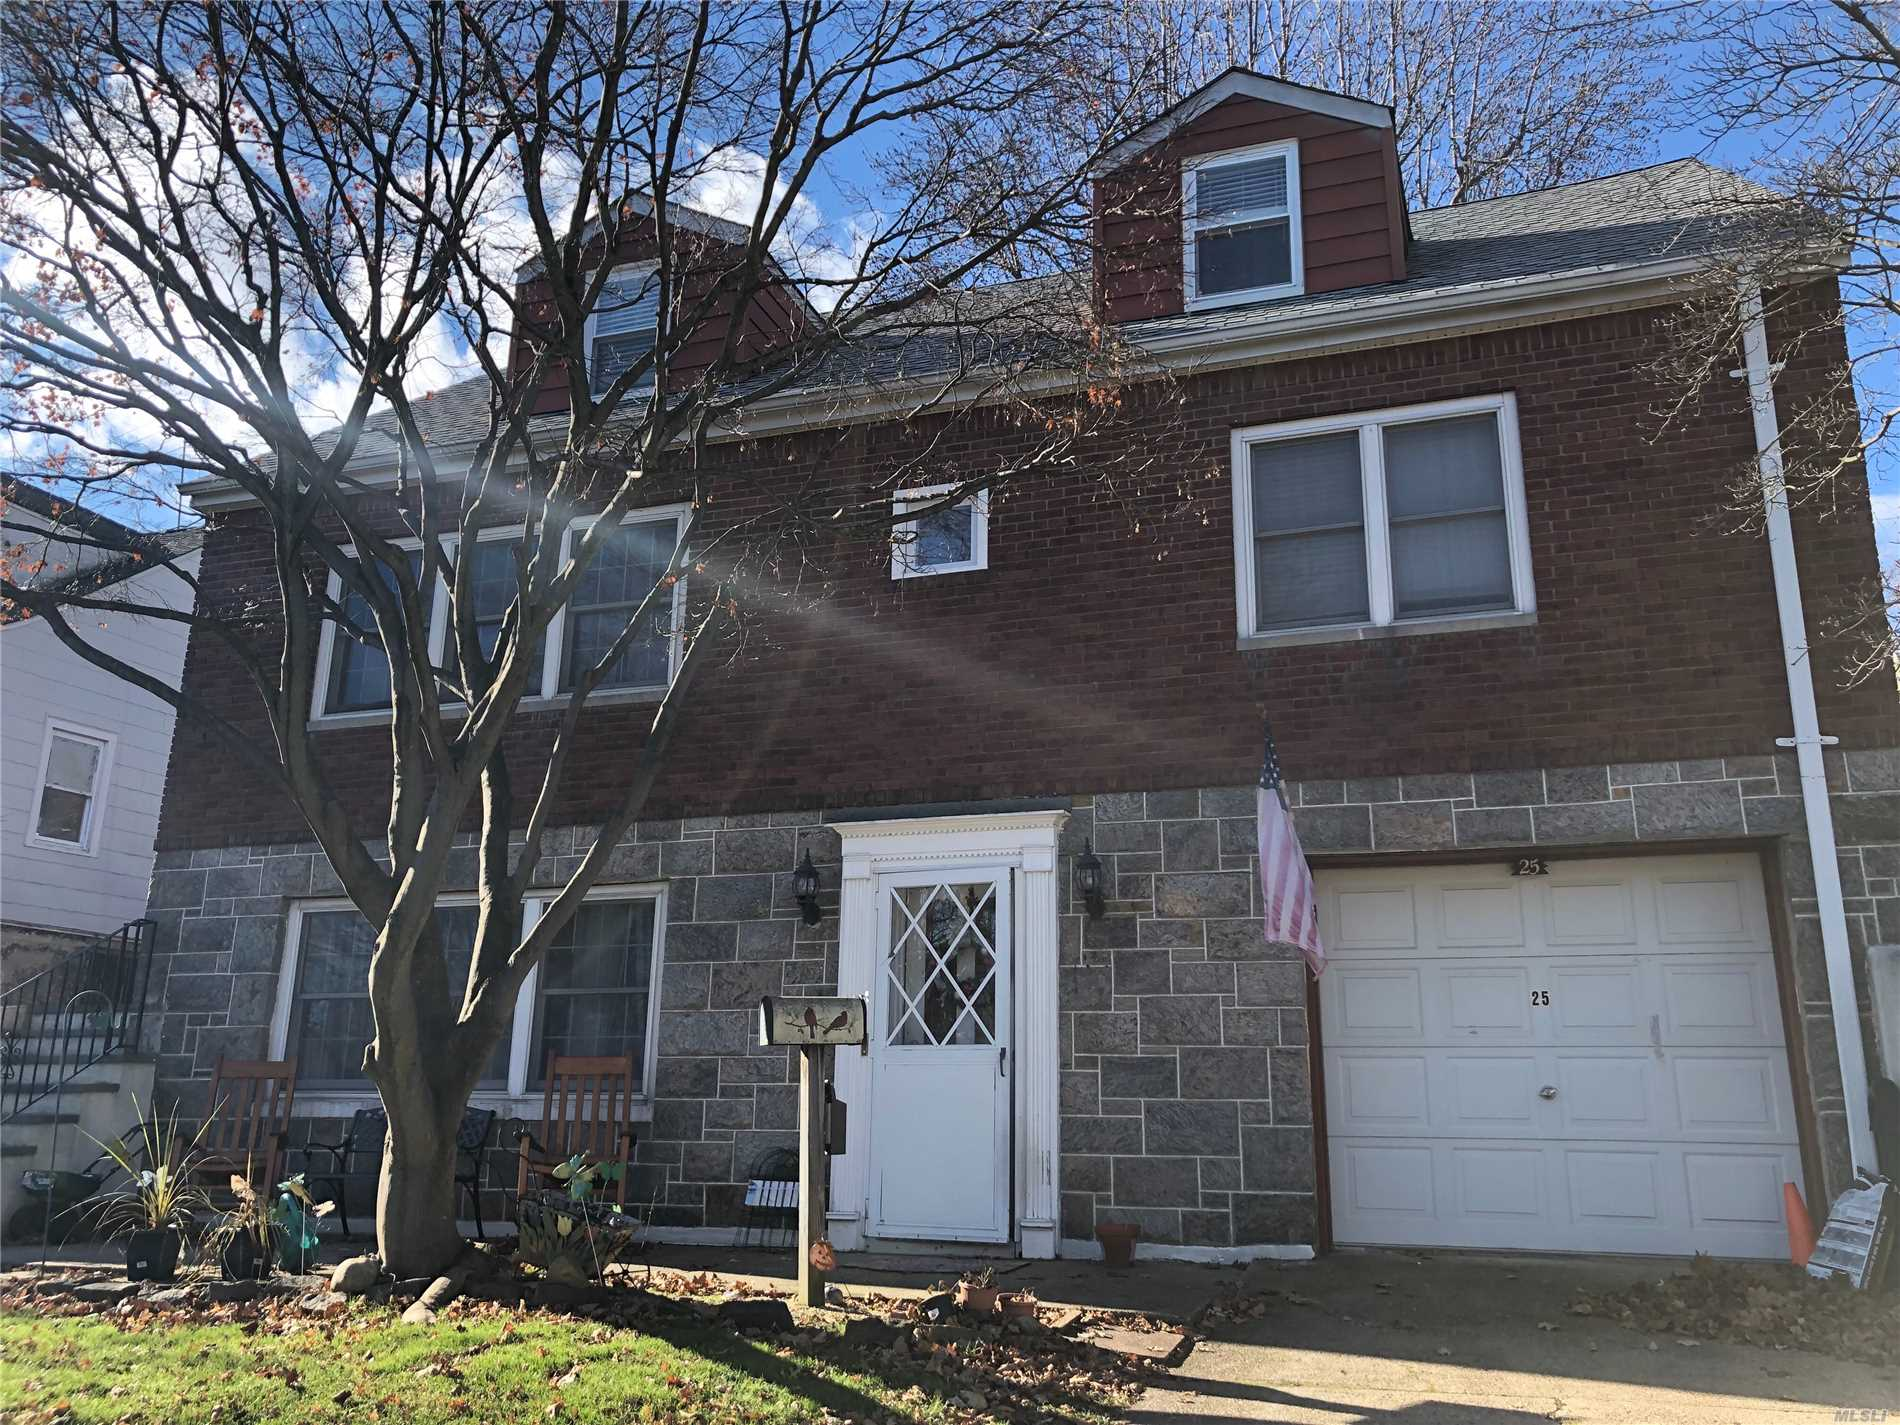 Charming, Meticulously Maintained First Floor 1 Bedroom Apartment In Manorhaven. Walk To Park, Beach And Pool. Bus Stop To Lirr On Corner Of Block. Landlord May Take A Small Pet With Additional Security. Occupancy January 1.